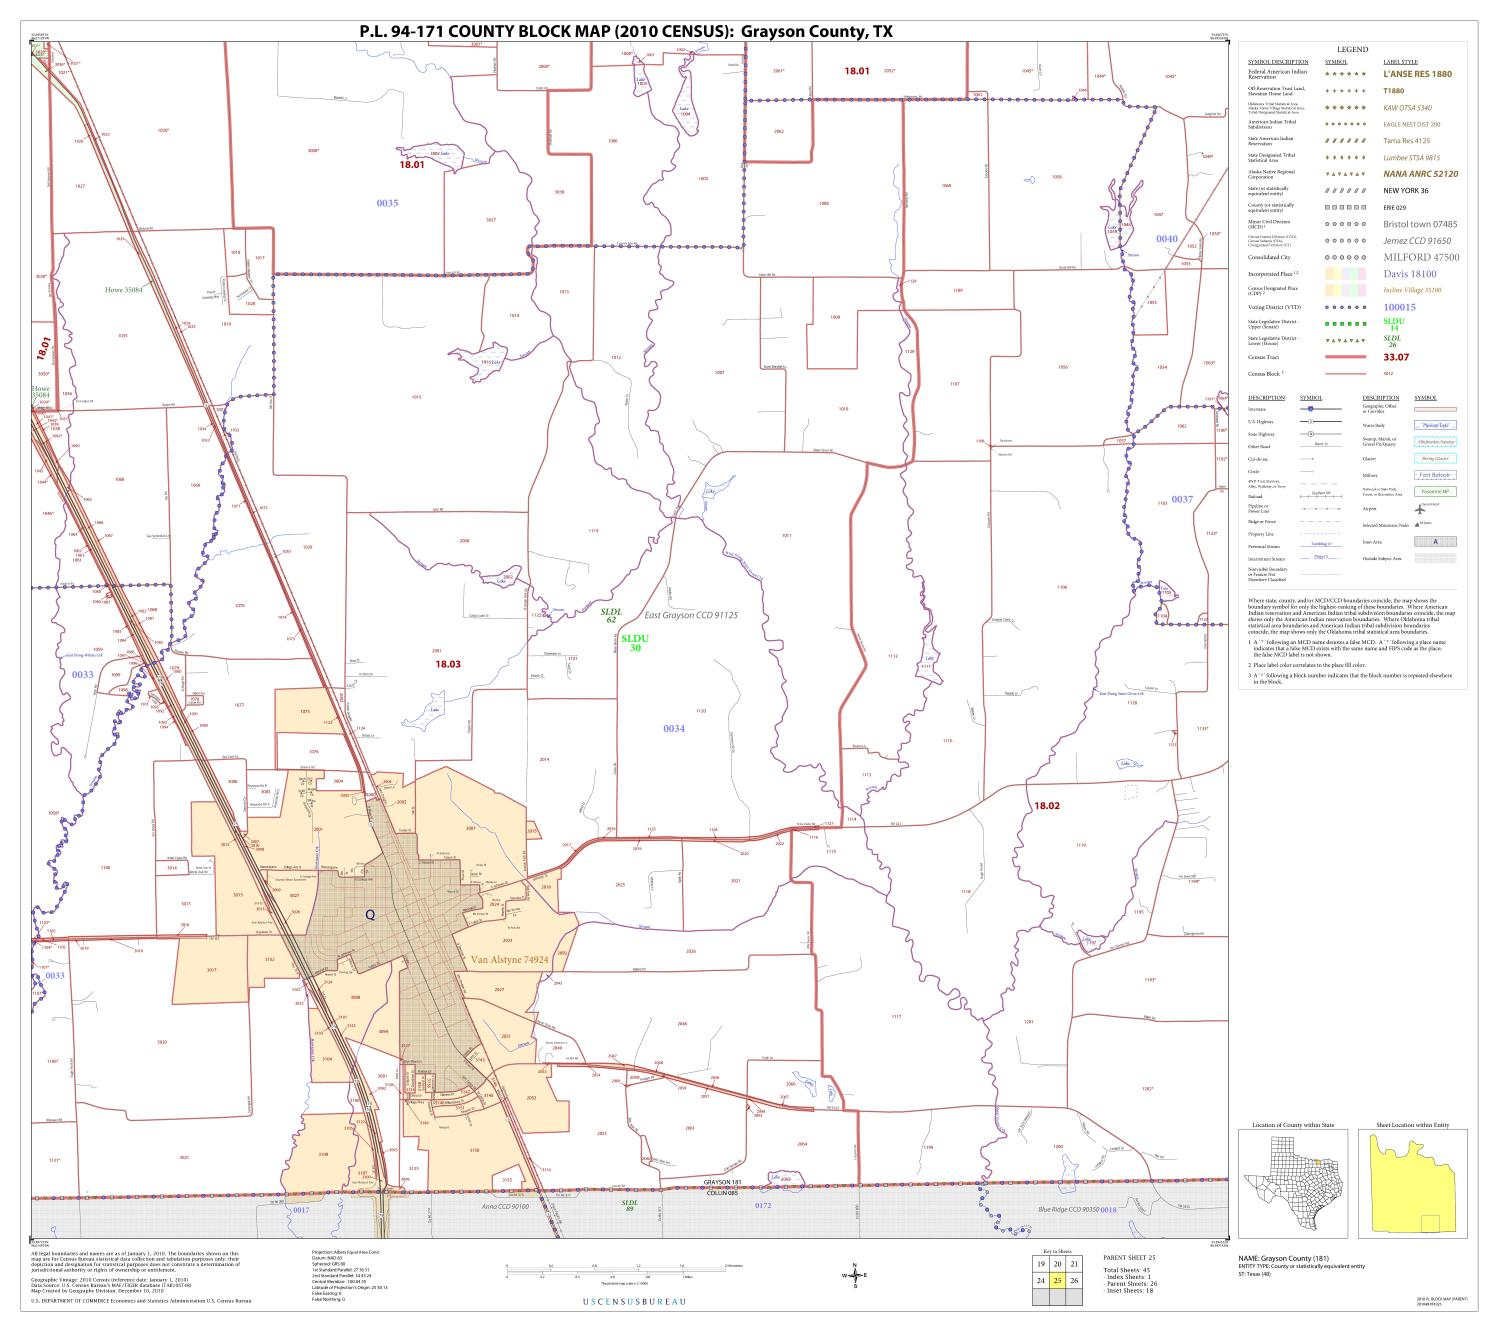 P.L. 94-171 County Block Map (2010 Census): Grayson County, Block 25                                                                                                      [Sequence #]: 1 of 1